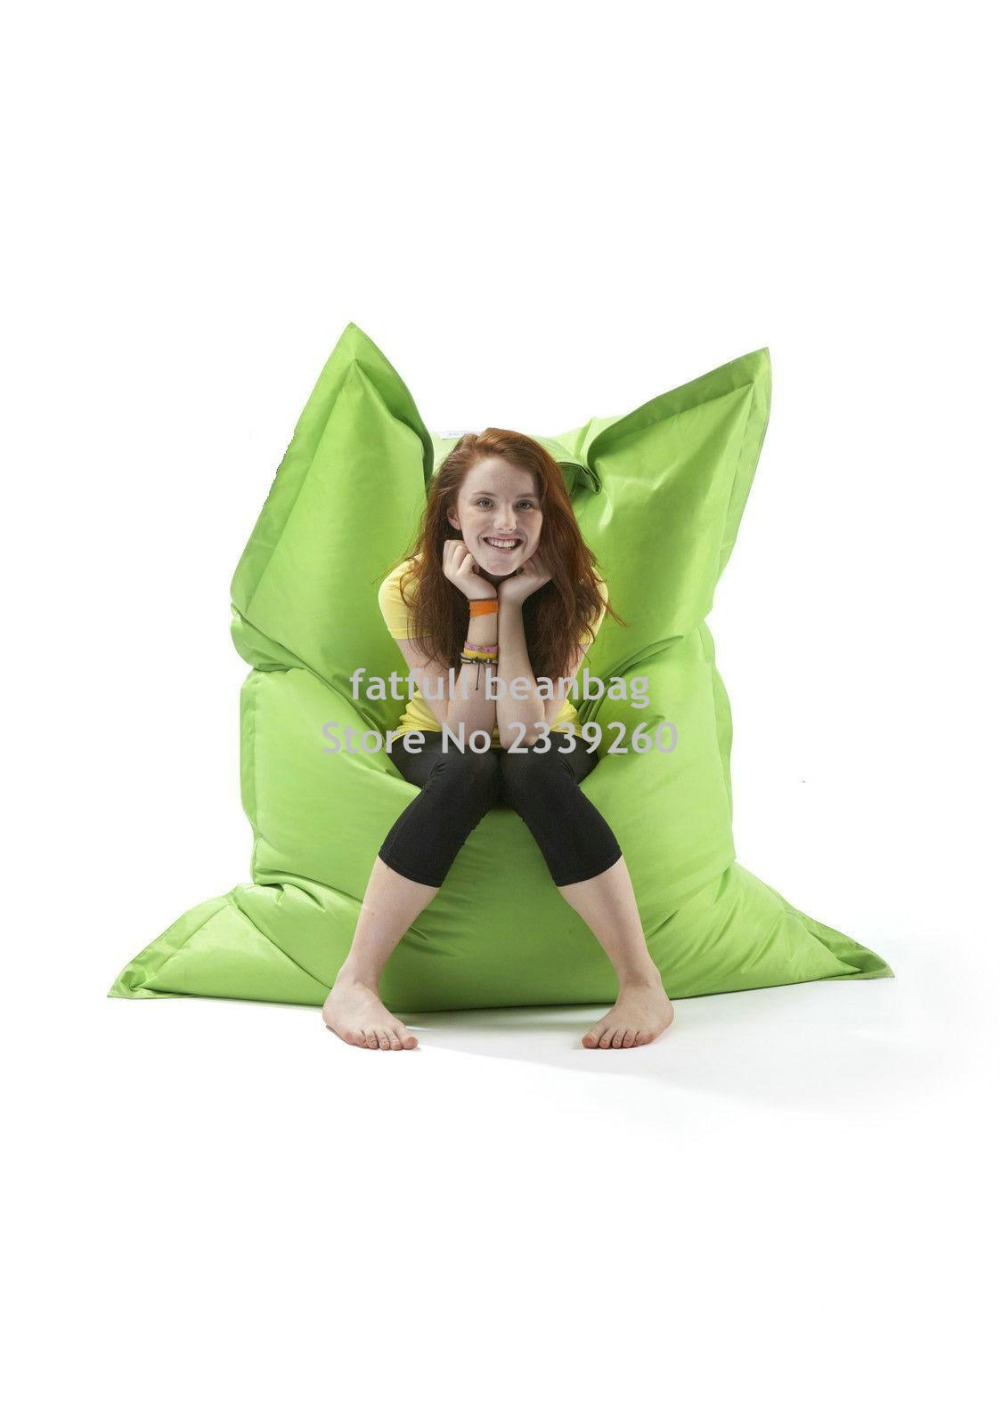 cover only no filler big hug big and extra large eco freindly bean bag green no beans inside - Large Bean Bags